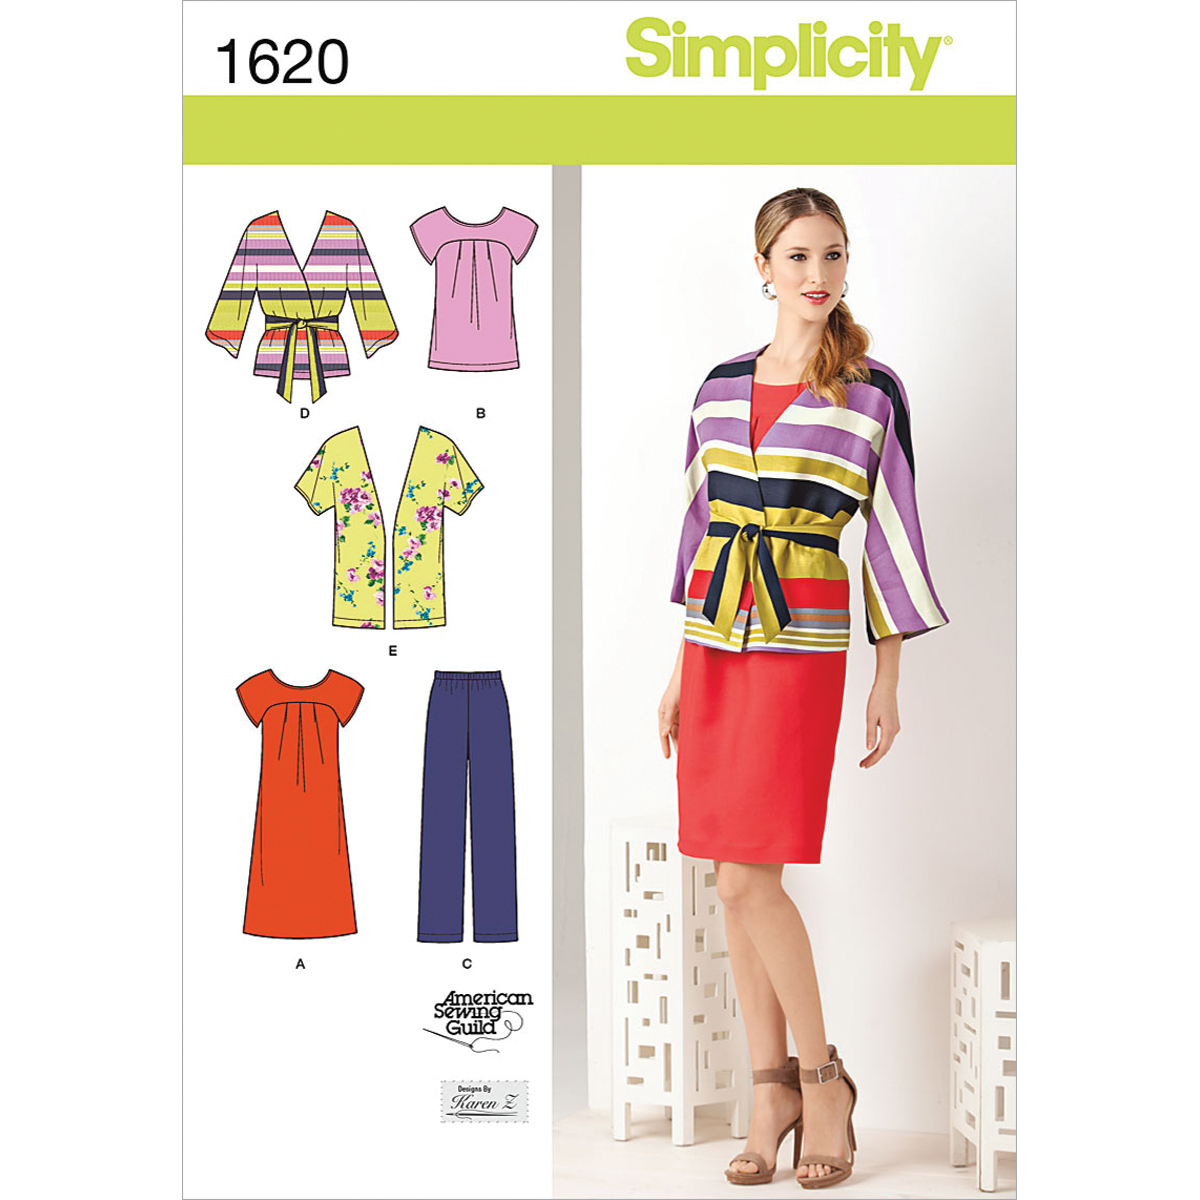 Simplicity Pattern 1620BB 20W-28W -Simplicity Misses Sp